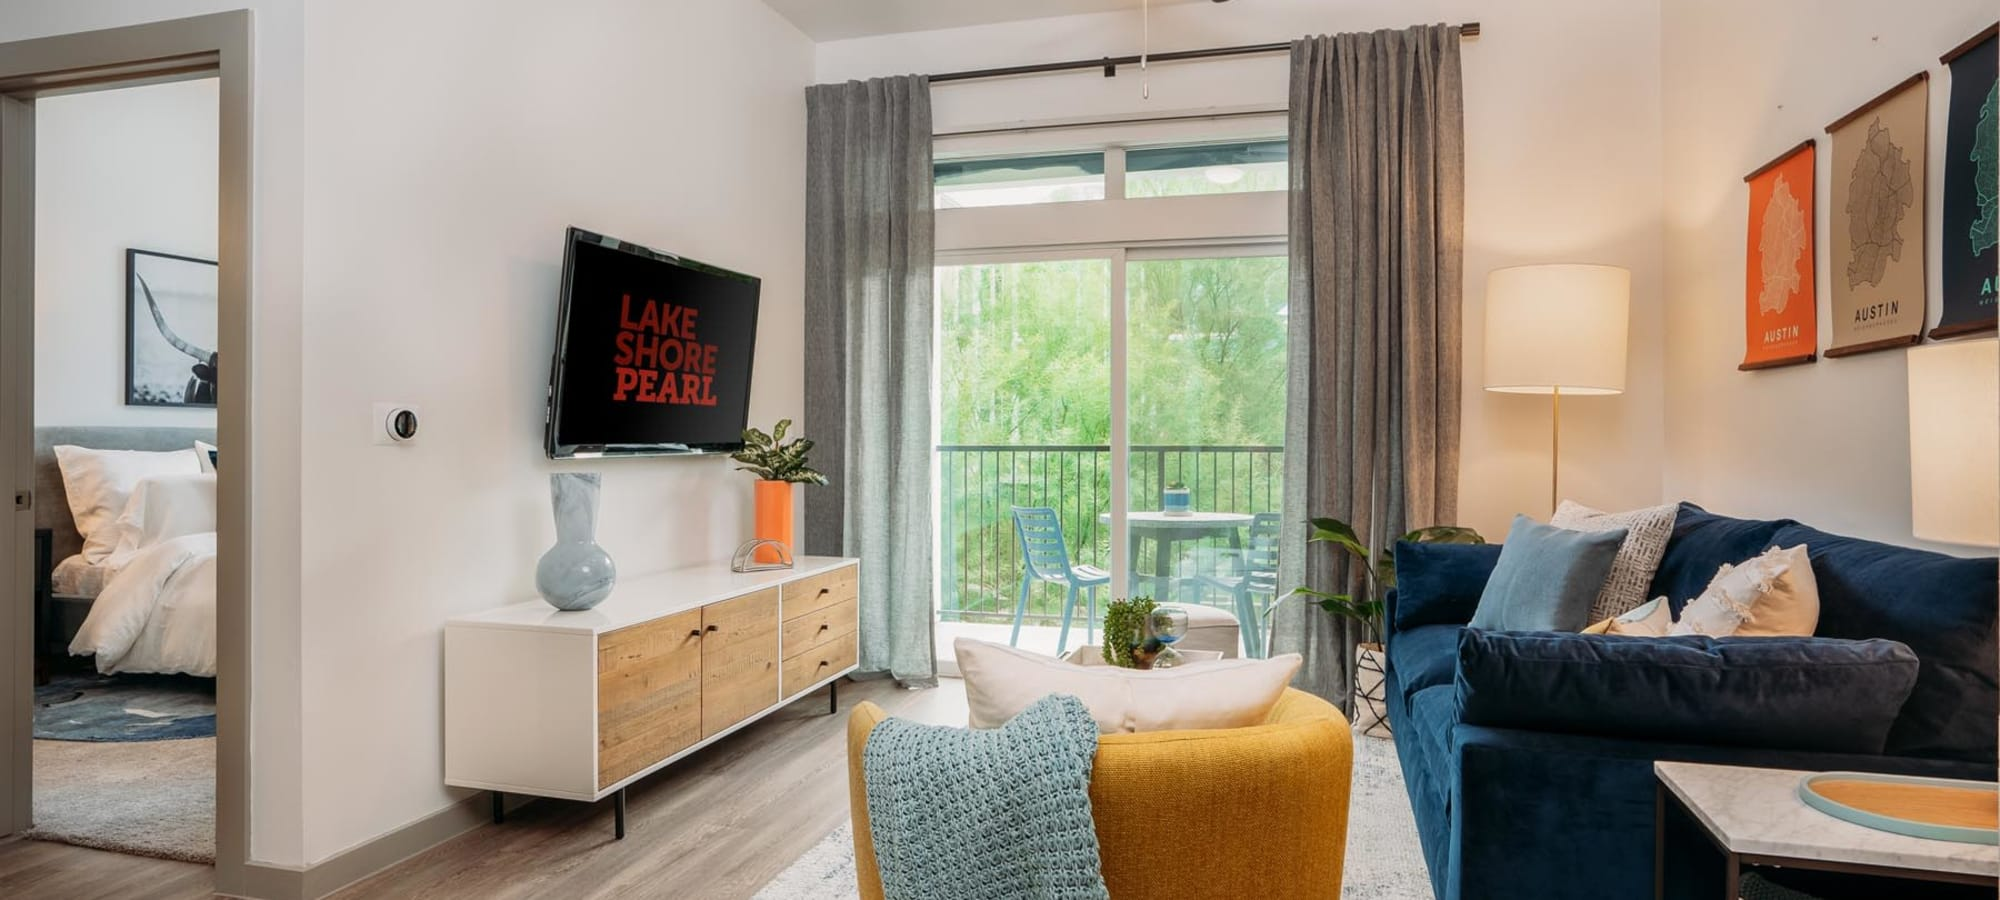 Model home's well-furnished living area with a wooded view outside Lakeshore Pearl in Austin, Texas